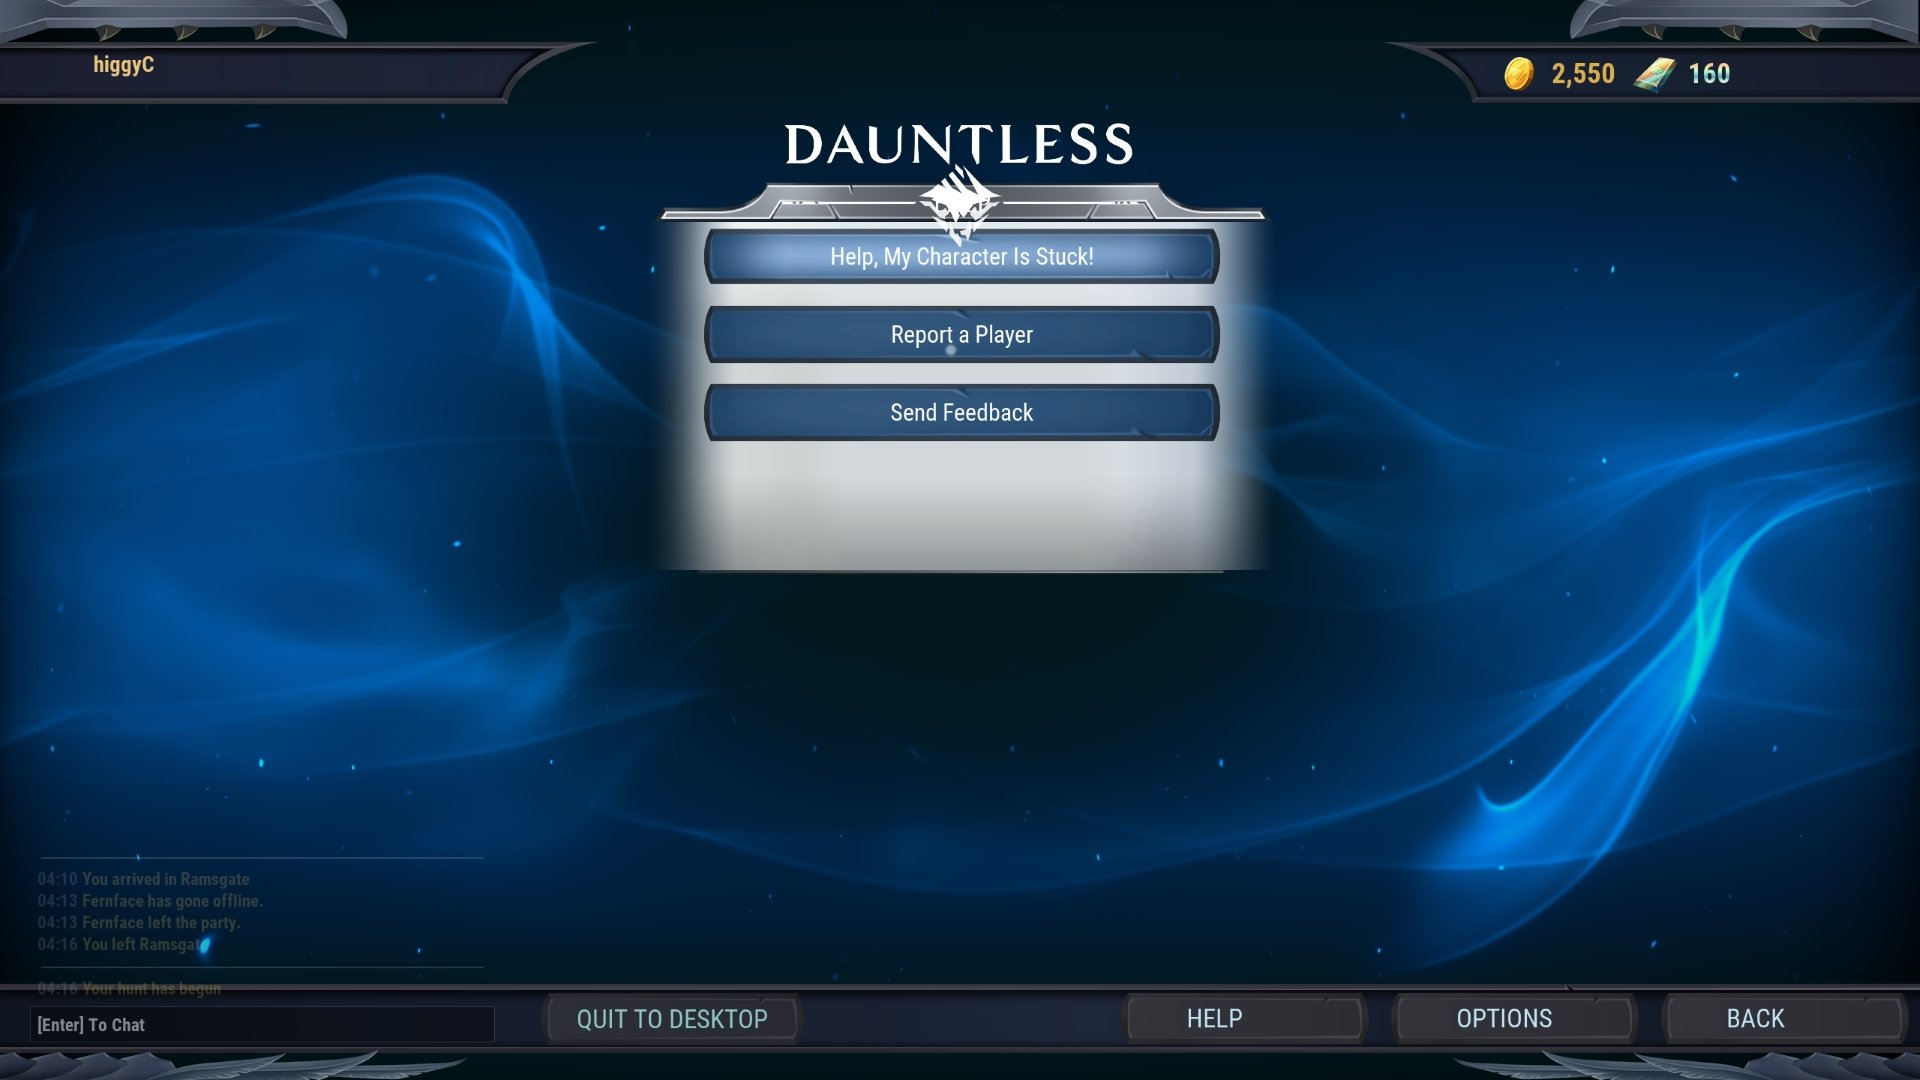 How to get unstuck in Dauntless